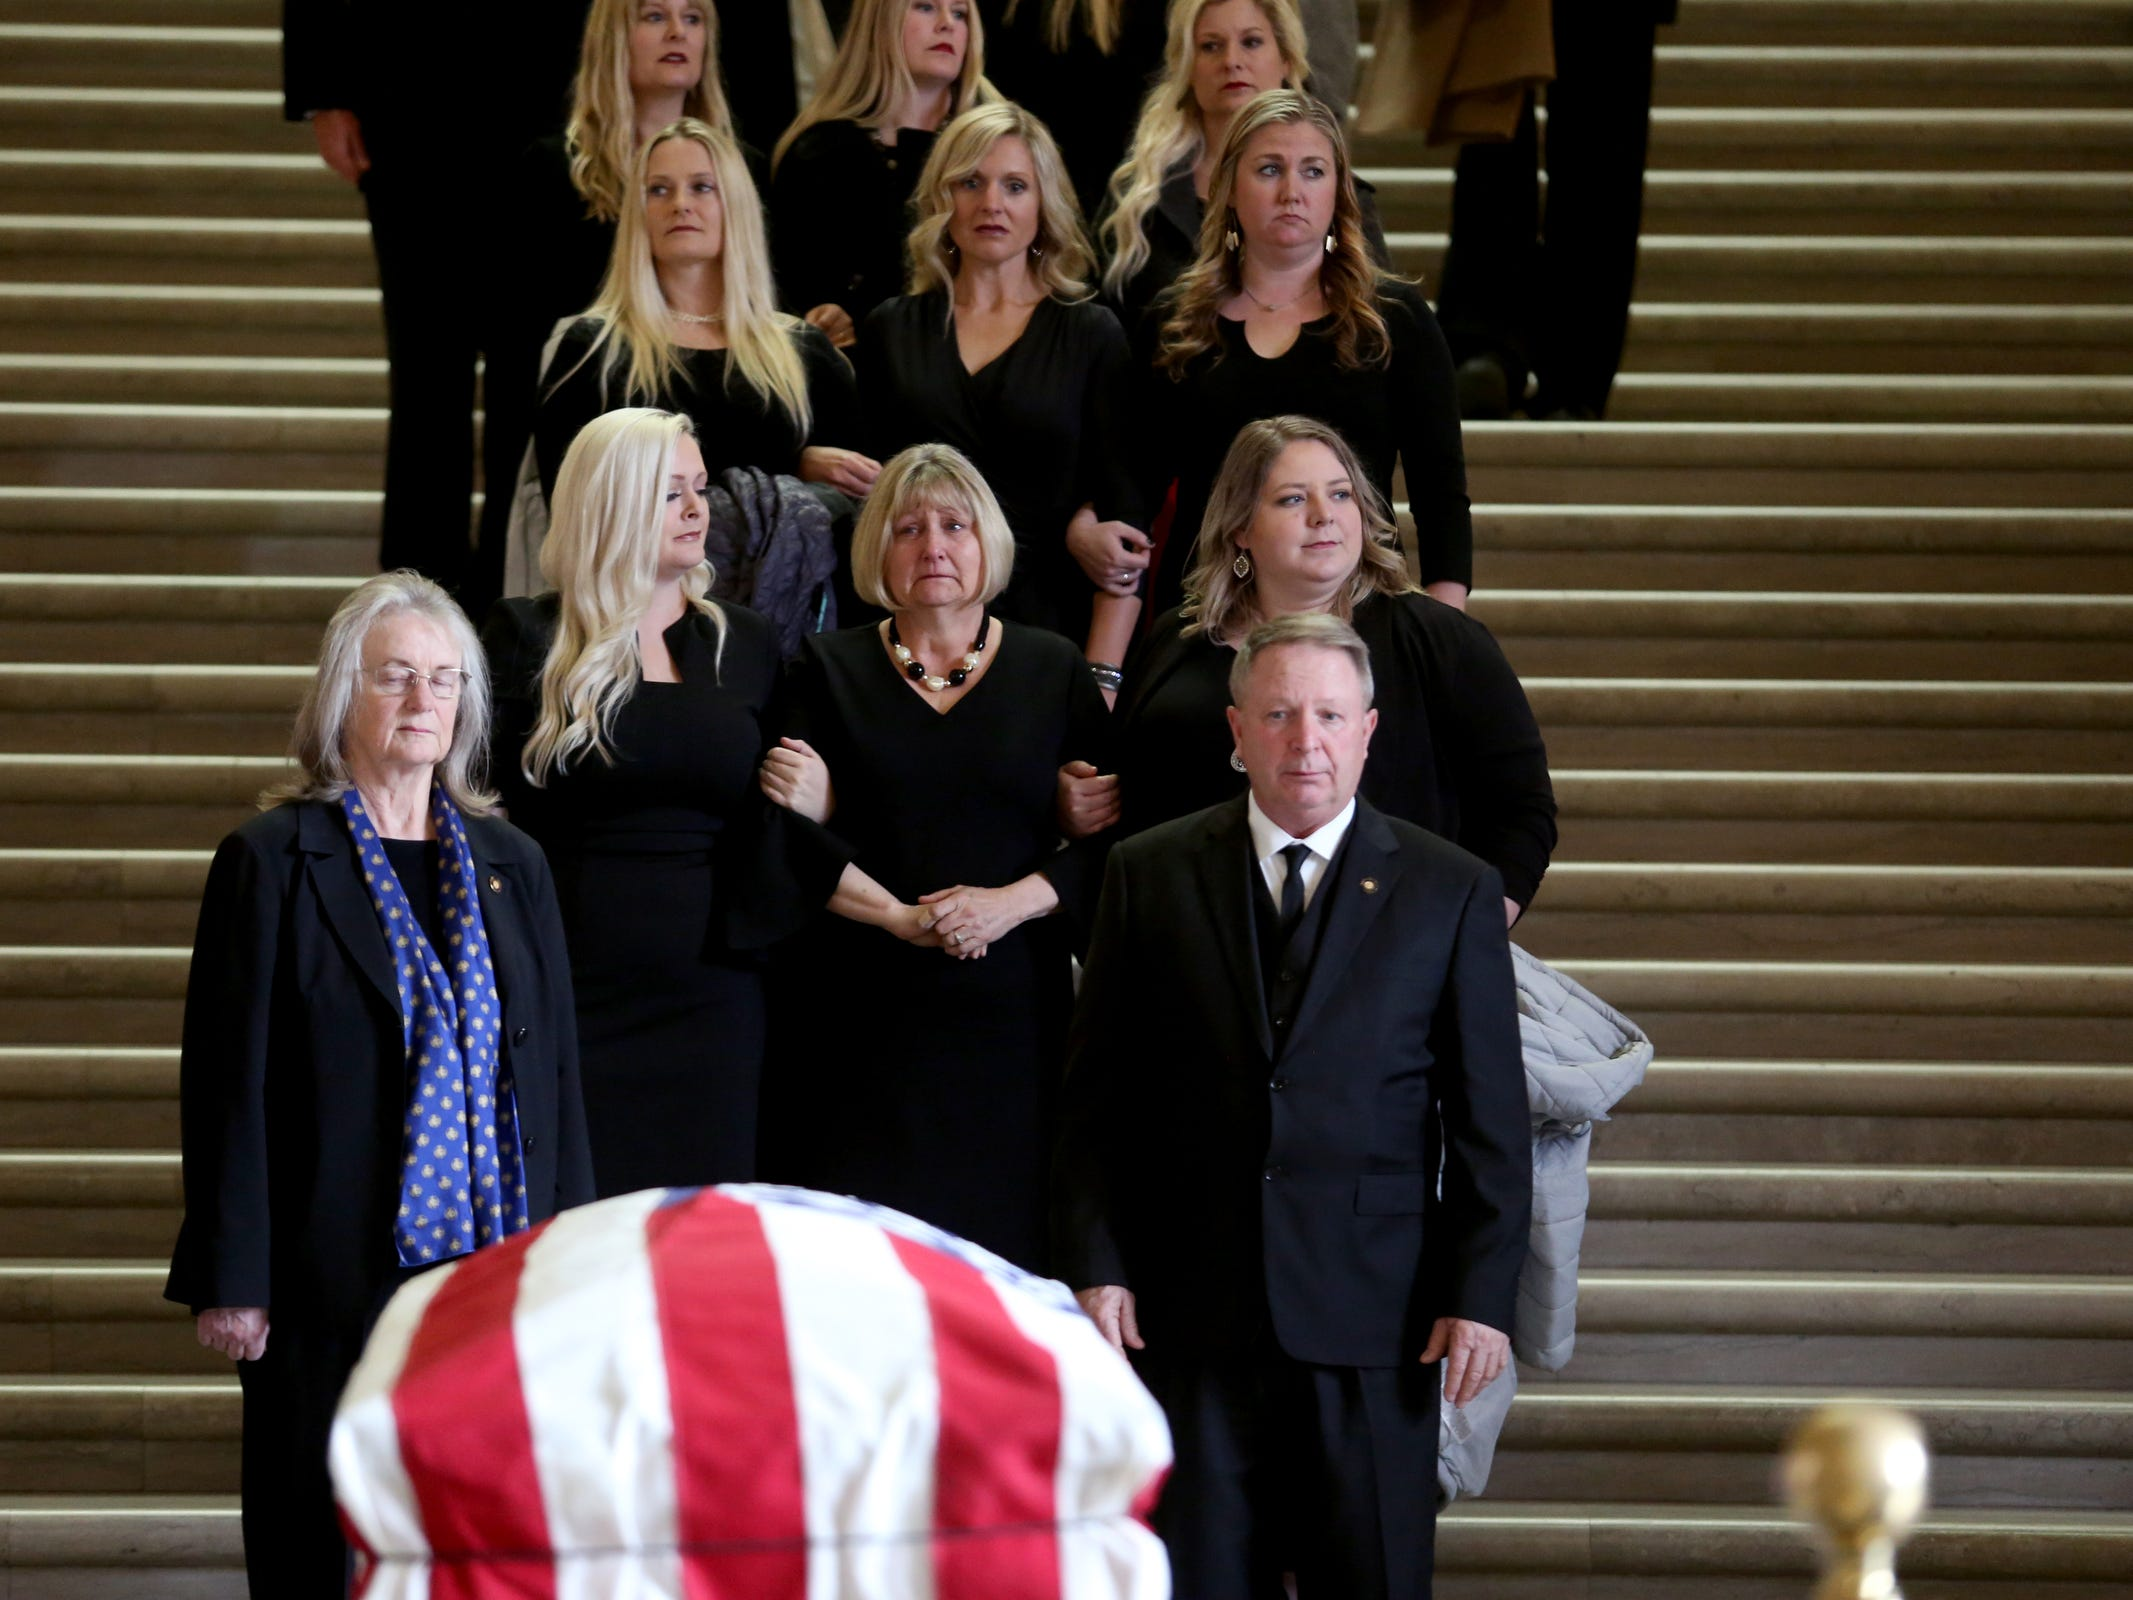 Cathy Richardson is surrounded by family and friends as they exit the Oregon State Capitol during the state funeral for her husband, Secretary of State Dennis Richardson, in Salem on Wednesday, March 6, 2019.